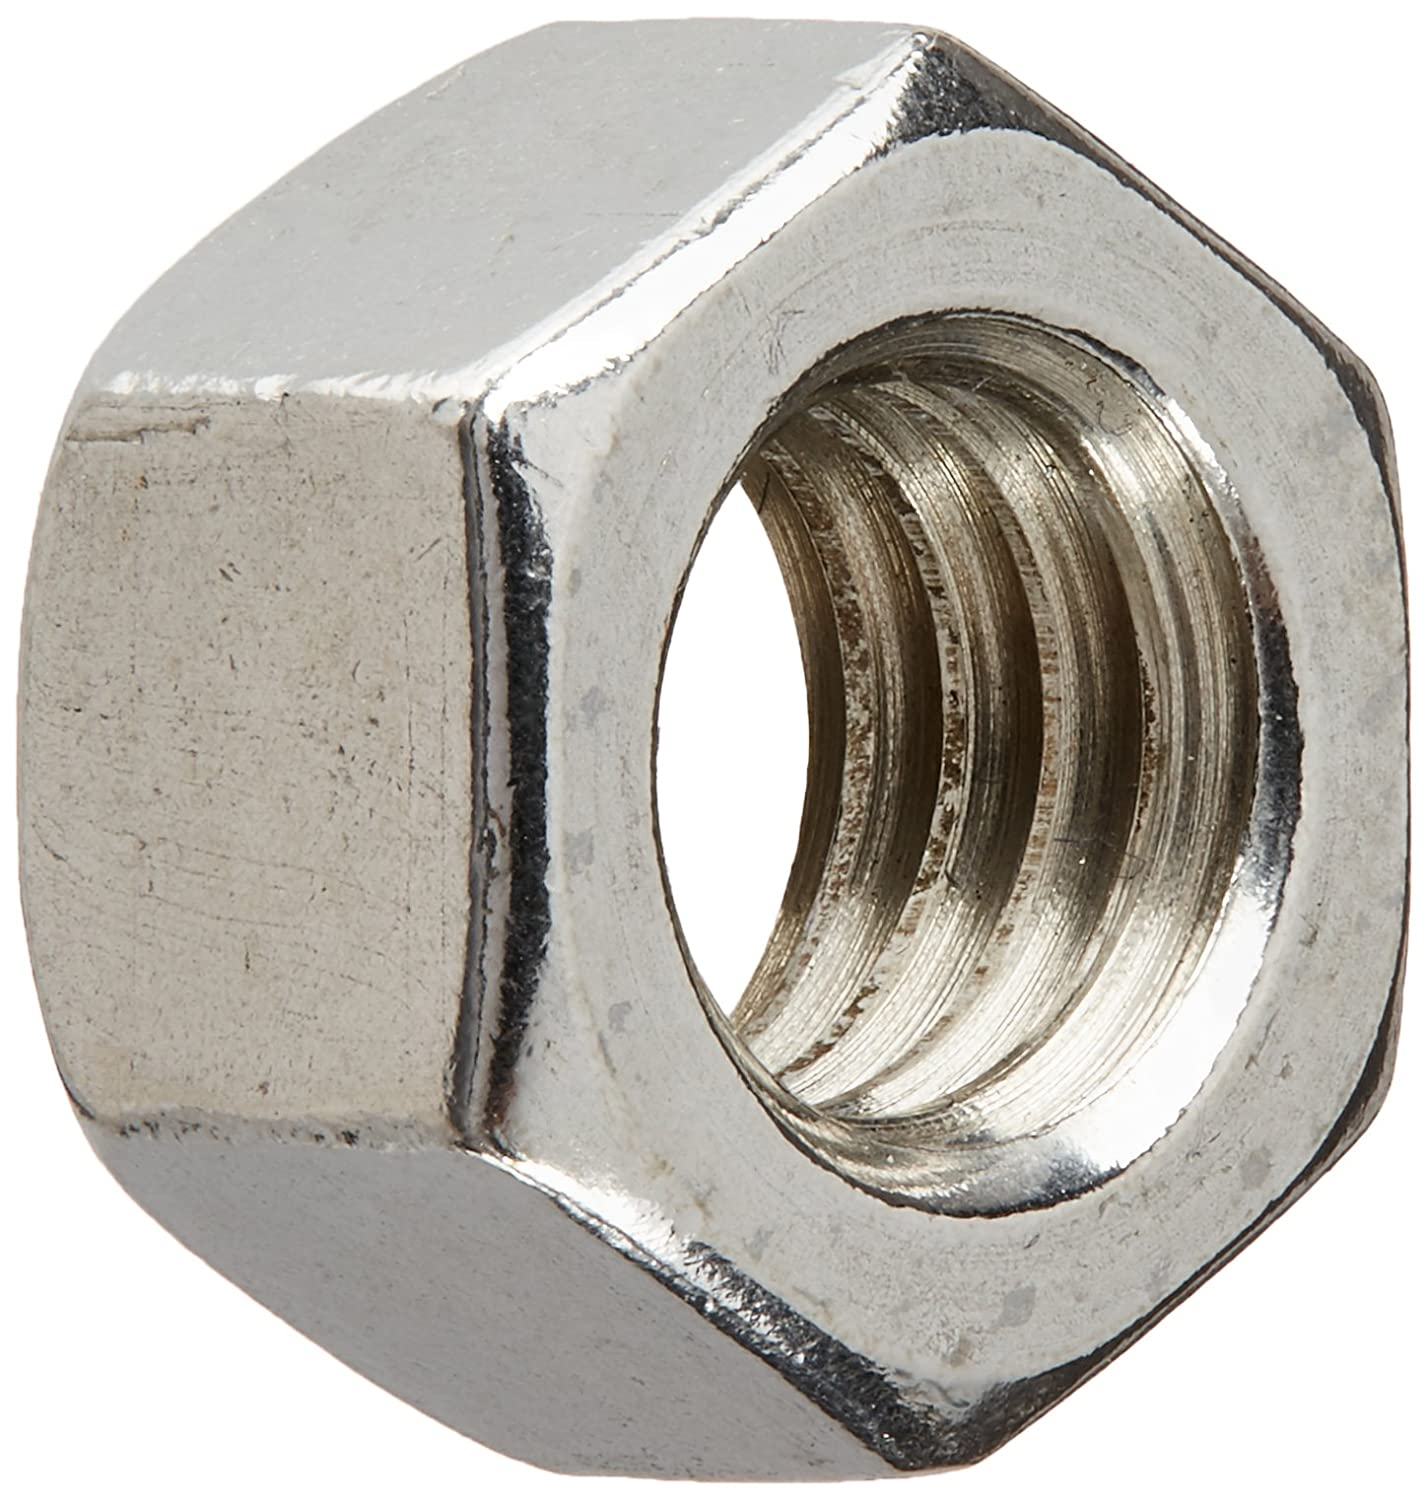 ARP 4008654 Stainless Steel Hex Nuts, Package Of 5, Size 3/8-16 400-8654